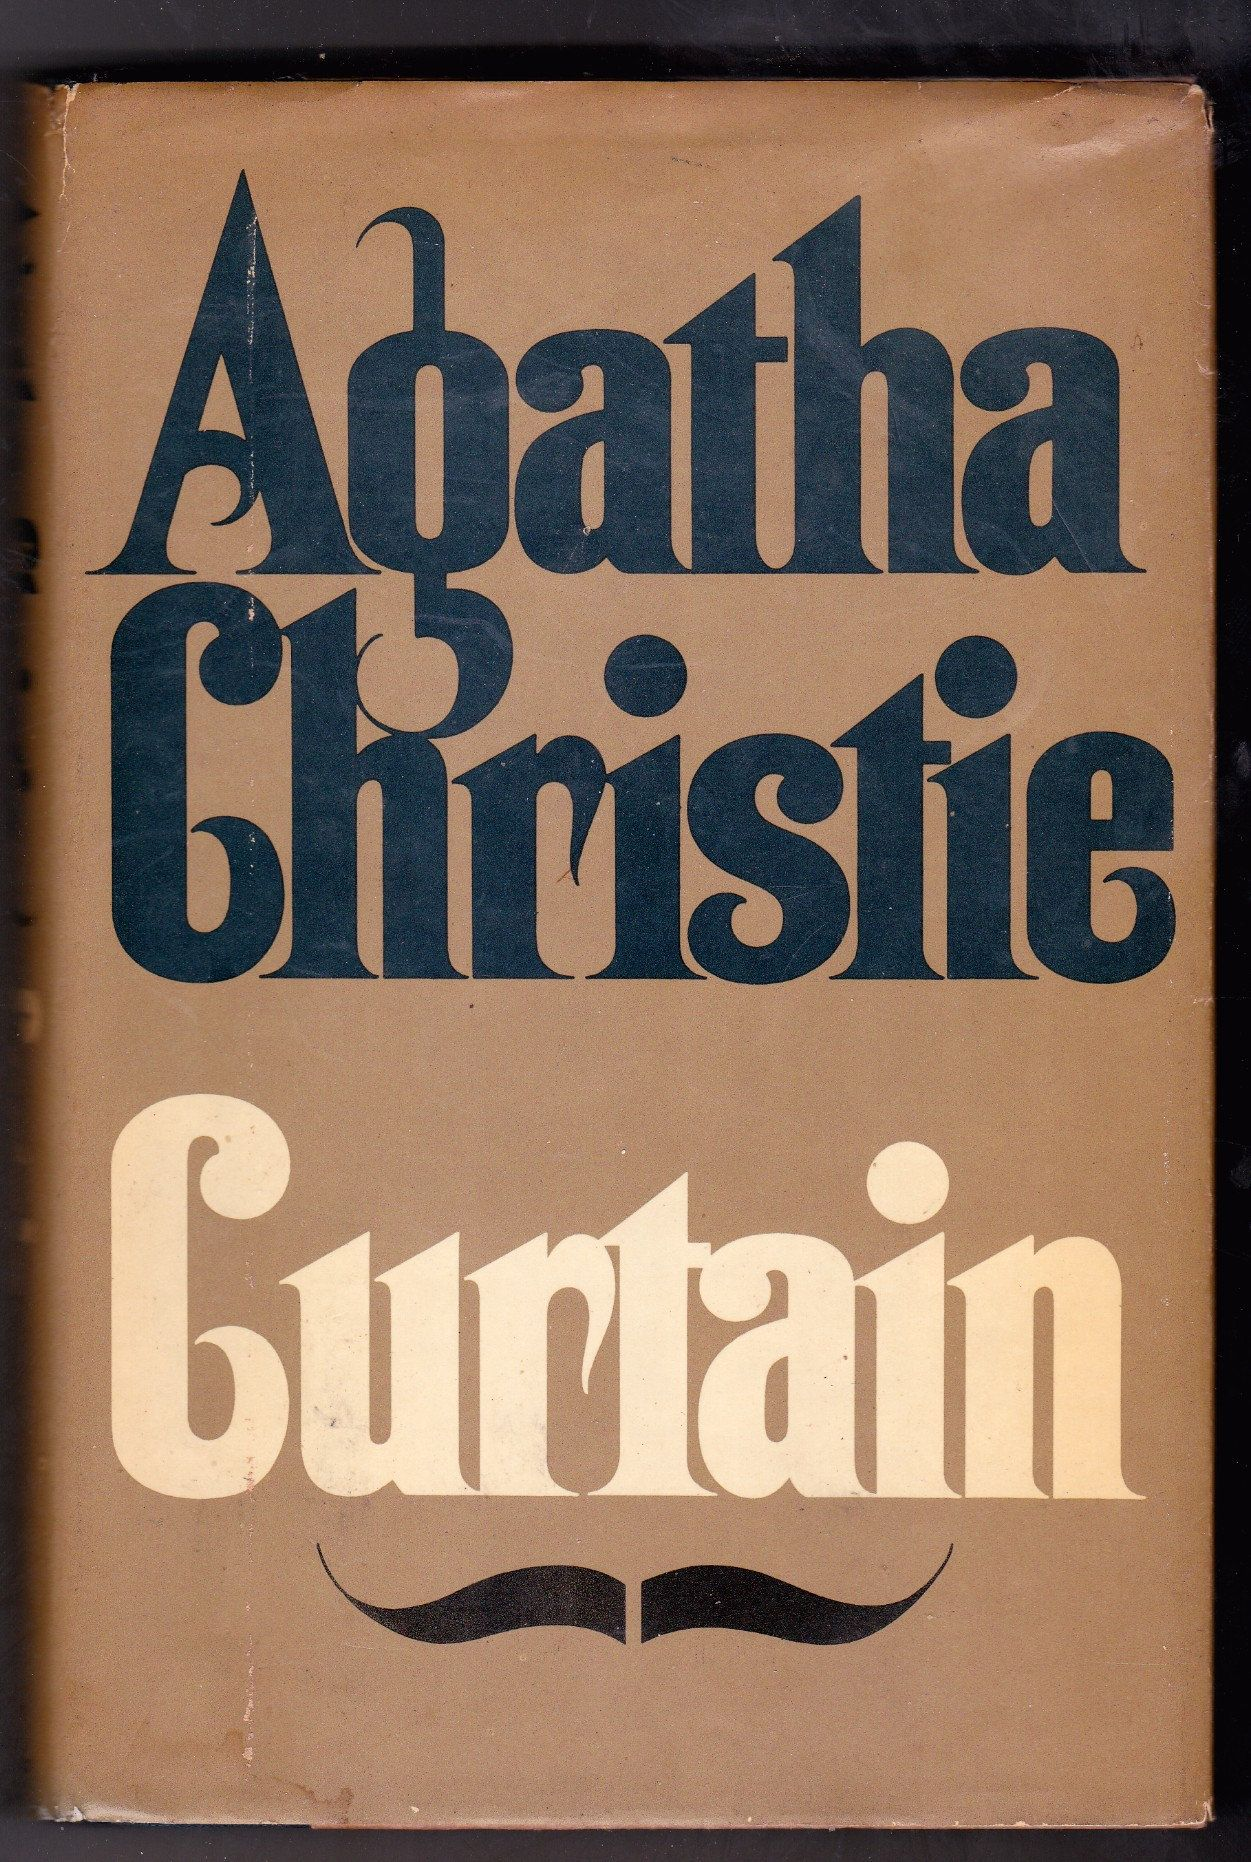 Agatha Christie Curtain Hardcover Hercule Poirot Mystery Novel 1975 By Usednyc On Etsy In 2020 Agatha Christie Agatha Christie Books Agatha